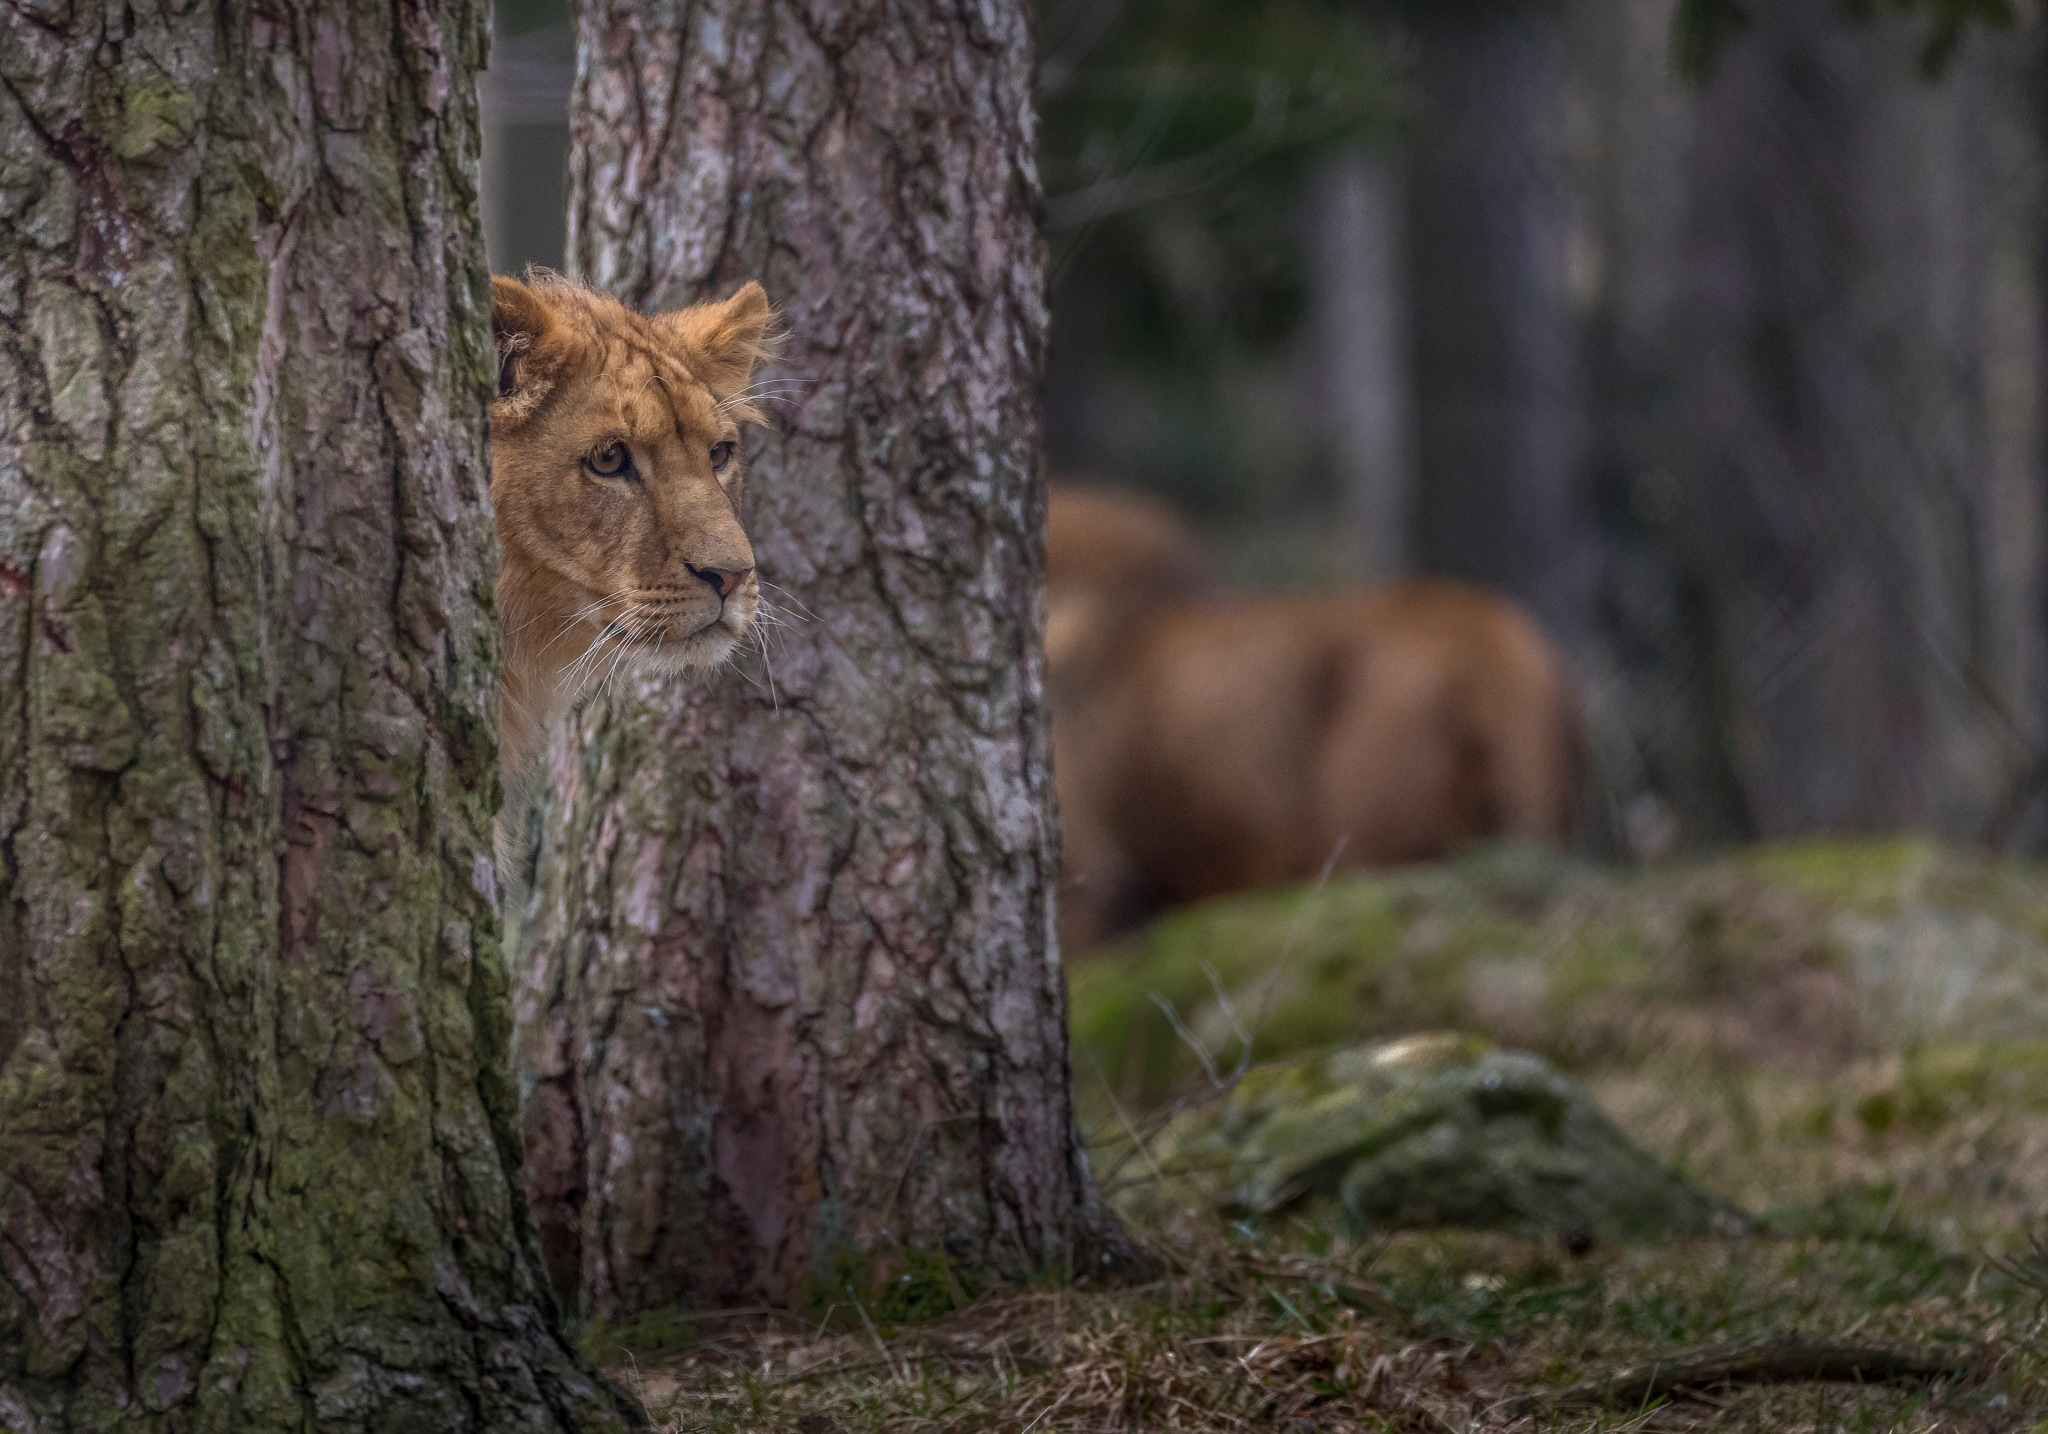 The Lion by Kim Jonsson